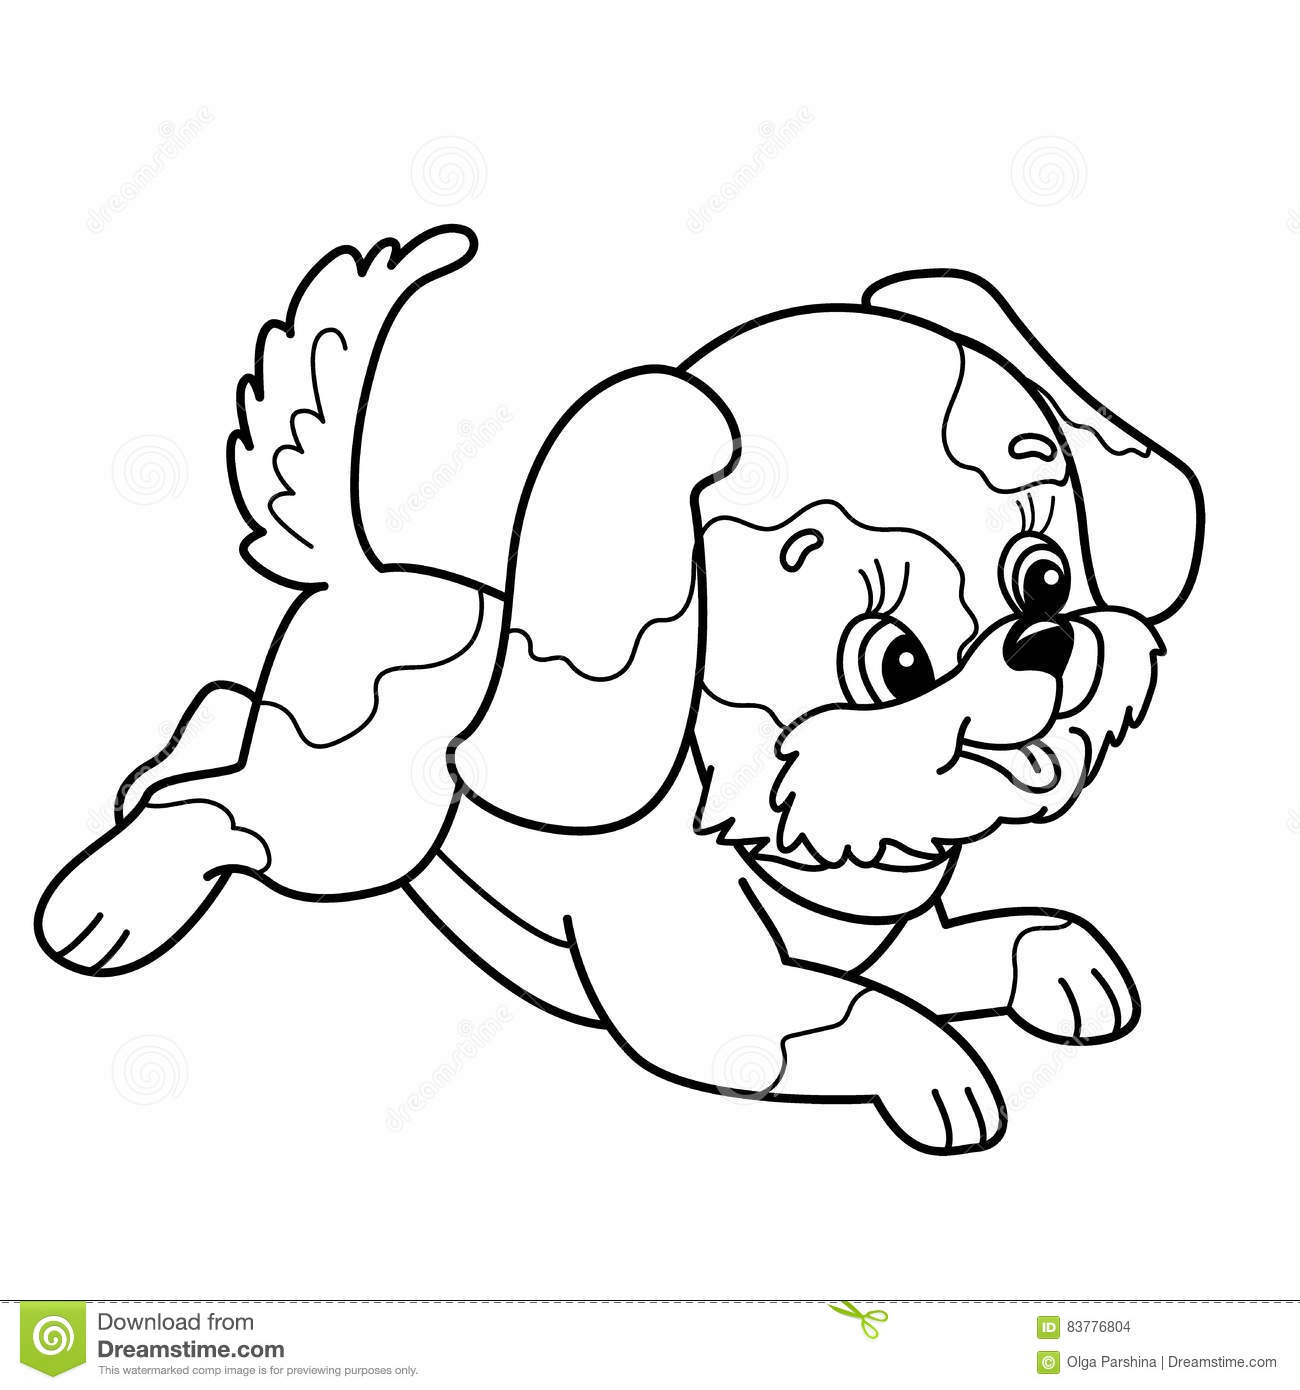 Coloring Page Outline Of Cute Puppy. Cartoon Joyful Dog Jumping ...